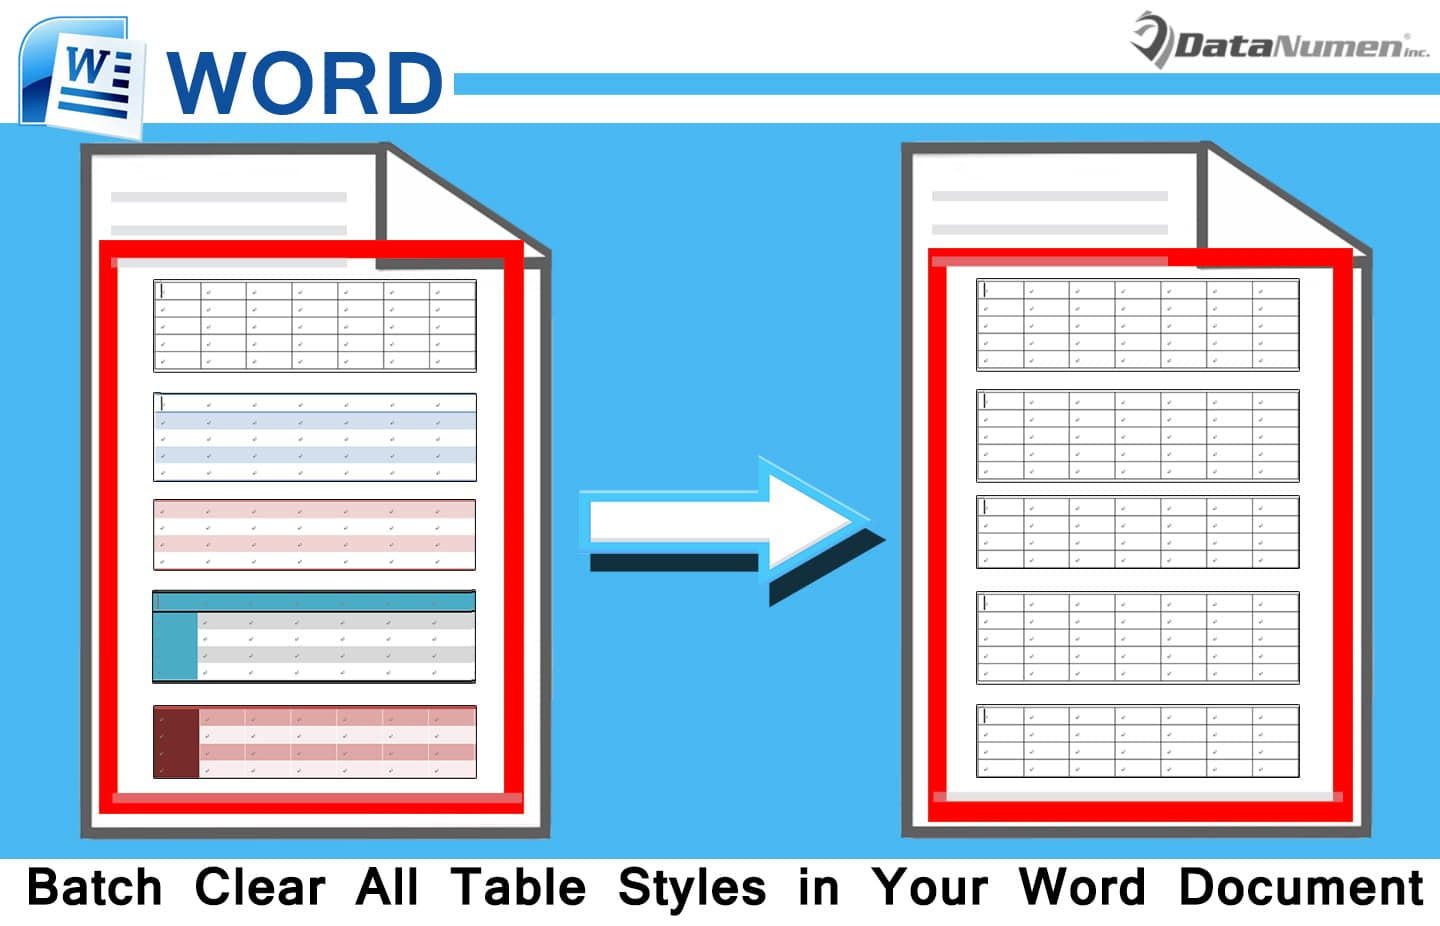 Batch Clear All Table Styles in Your Word Document